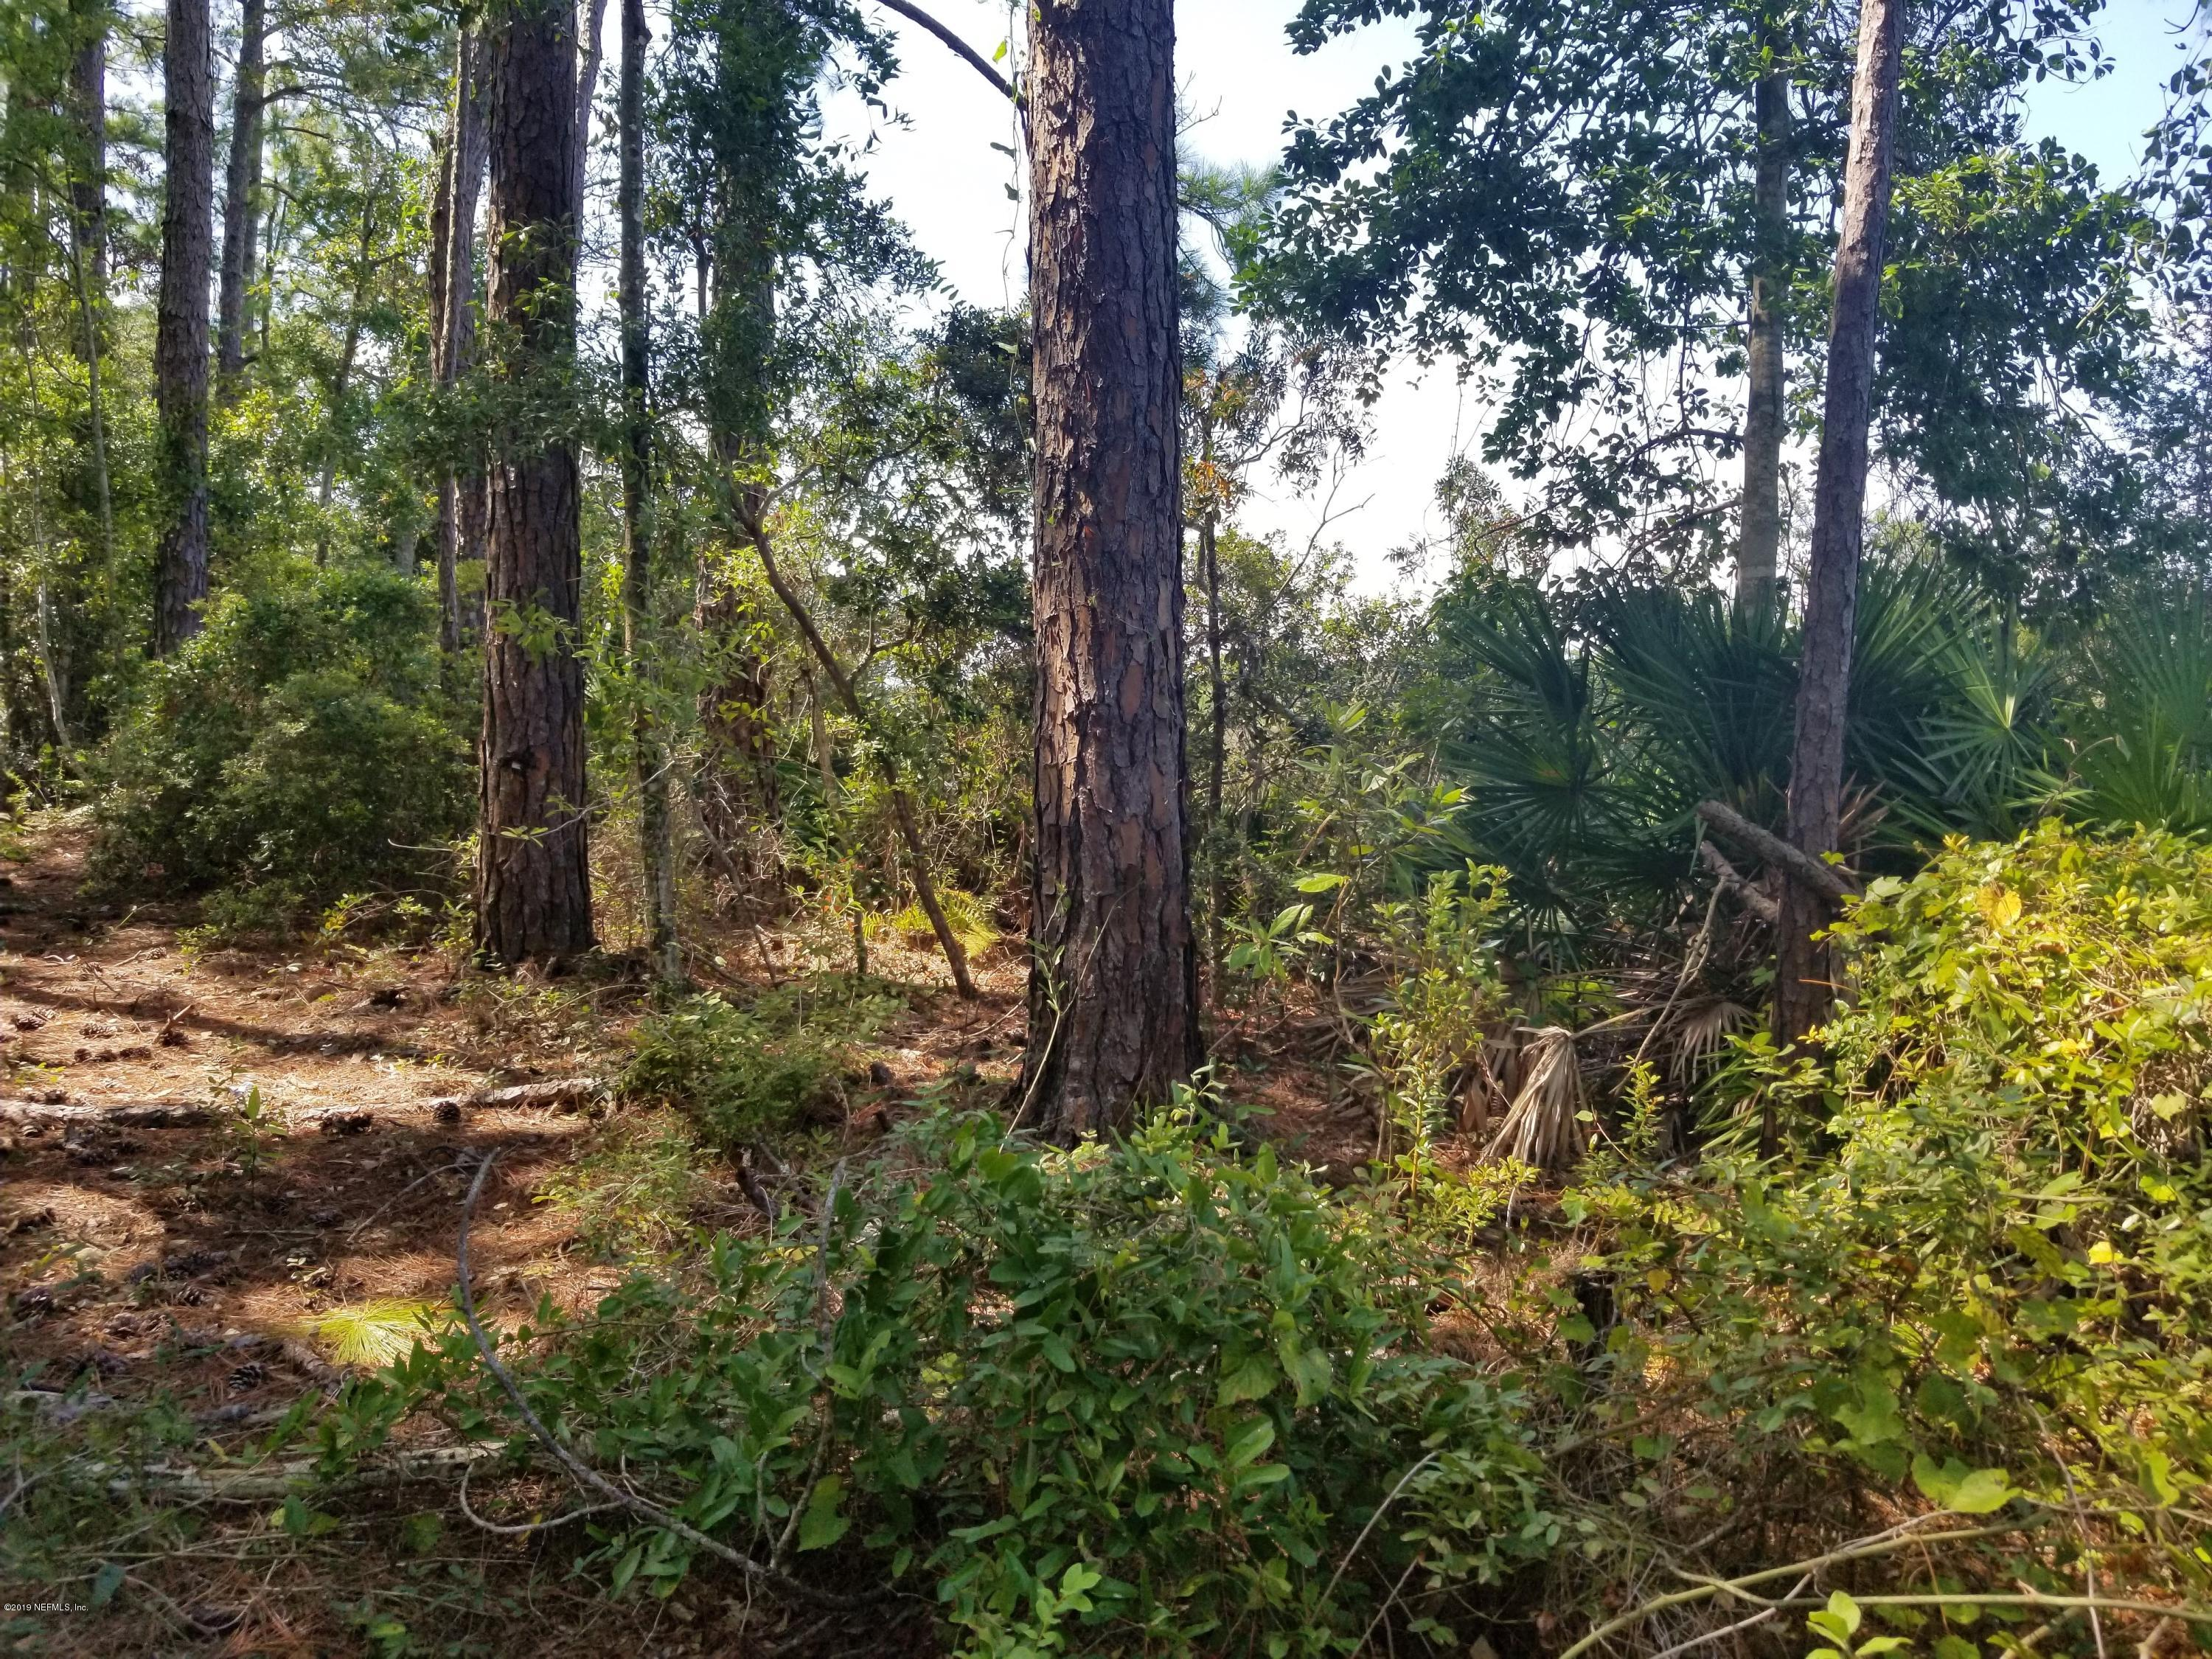 0 VICKERS, JACKSONVILLE, FLORIDA 32218, ,Vacant land,For sale,VICKERS,1015338